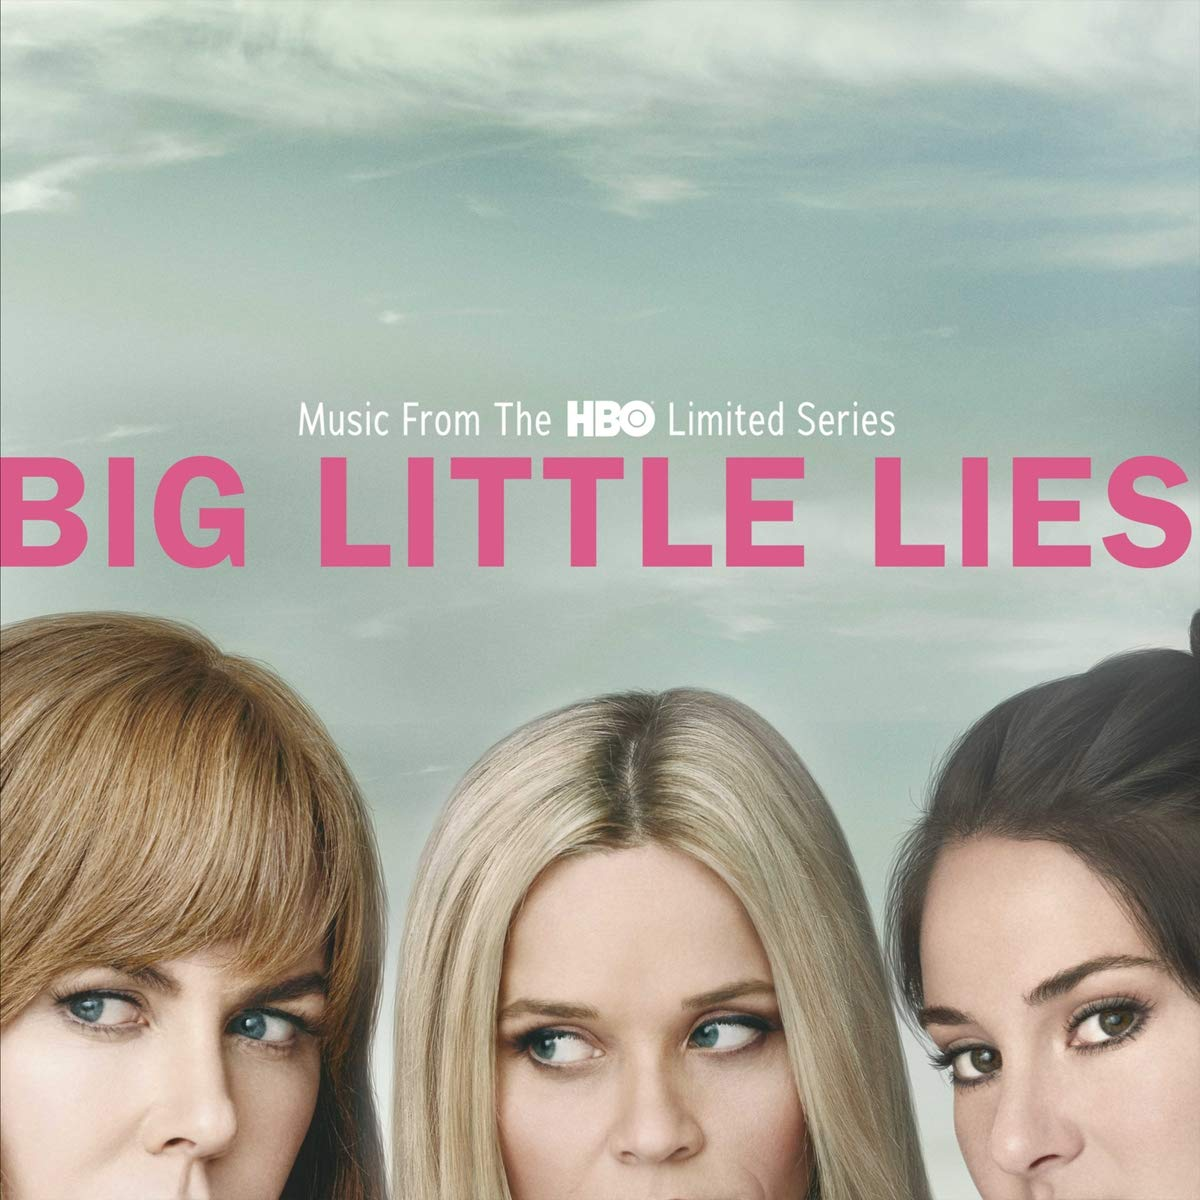 Big Little Lies [2 LP][Music From The HBO Limited Series